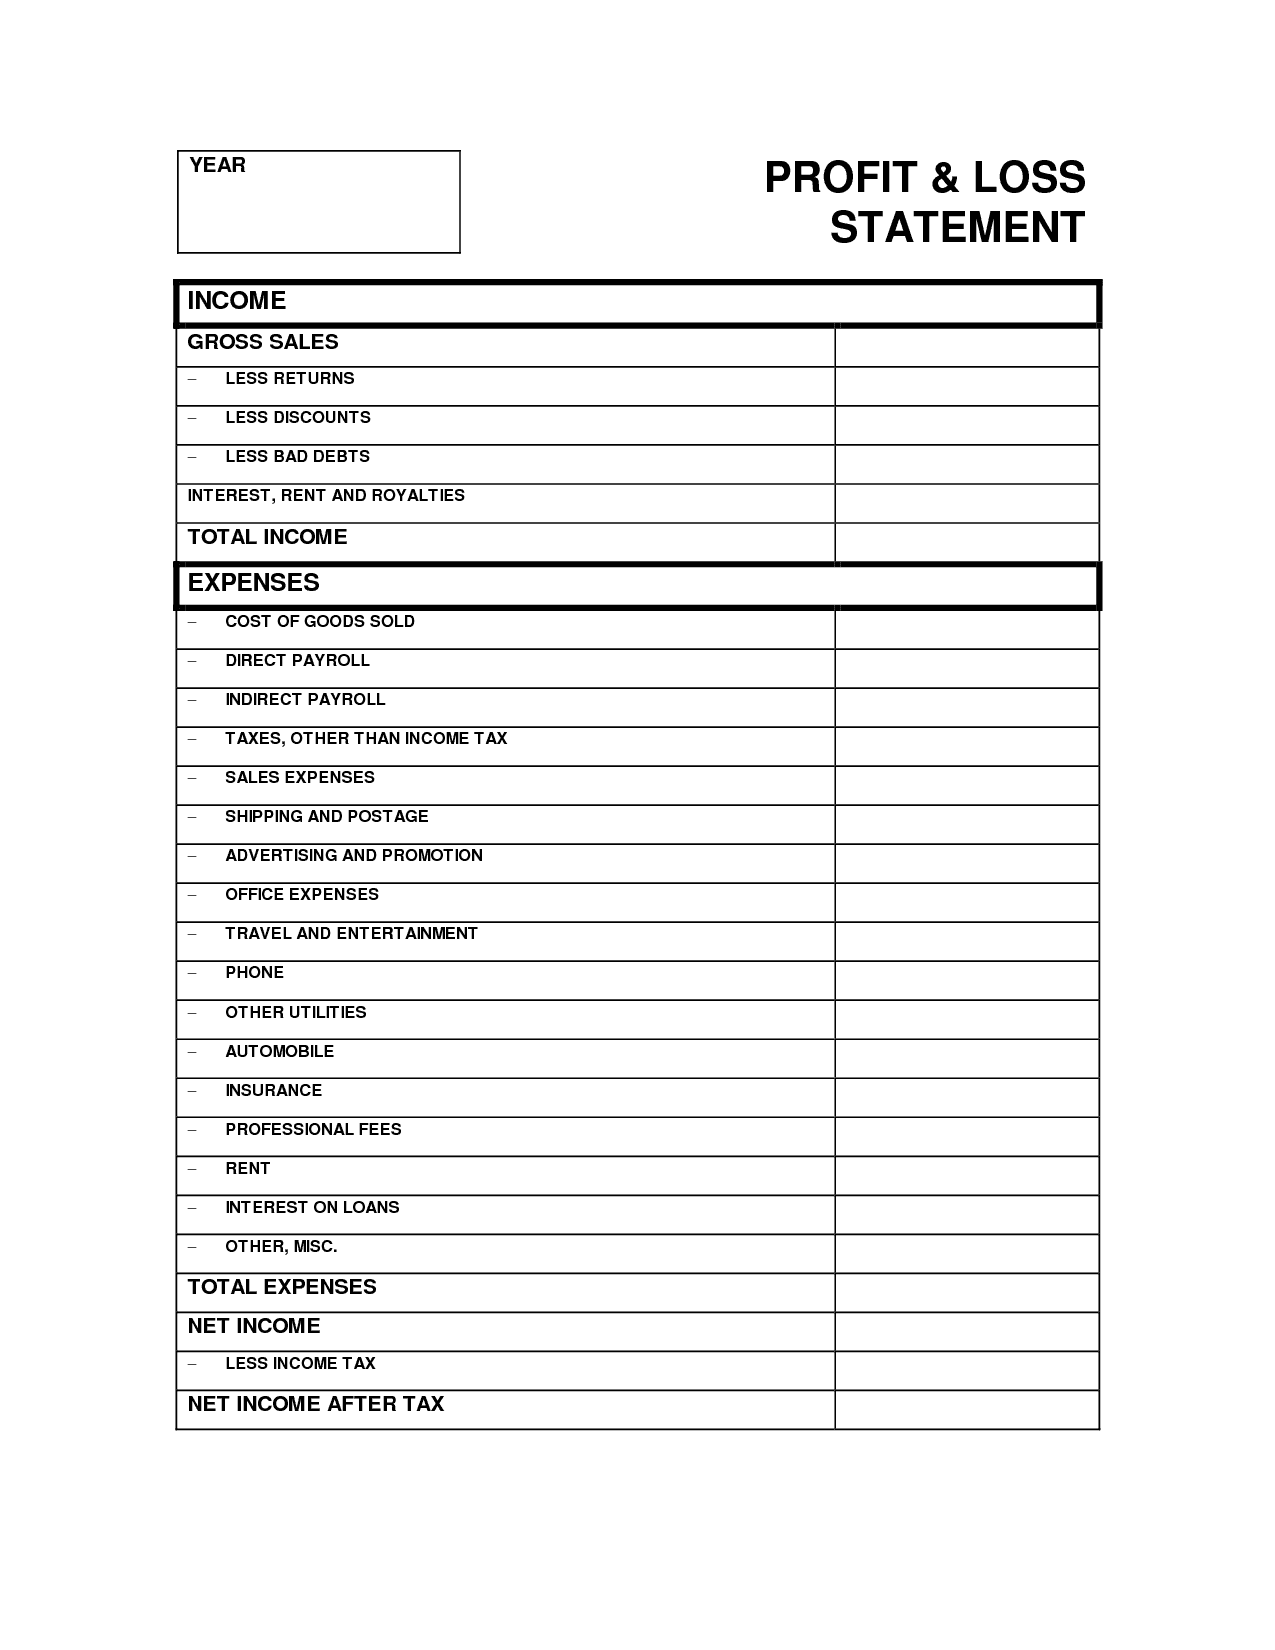 Free Profit And Loss Statement Template And How To Create A Profit And Loss Statement In Excel